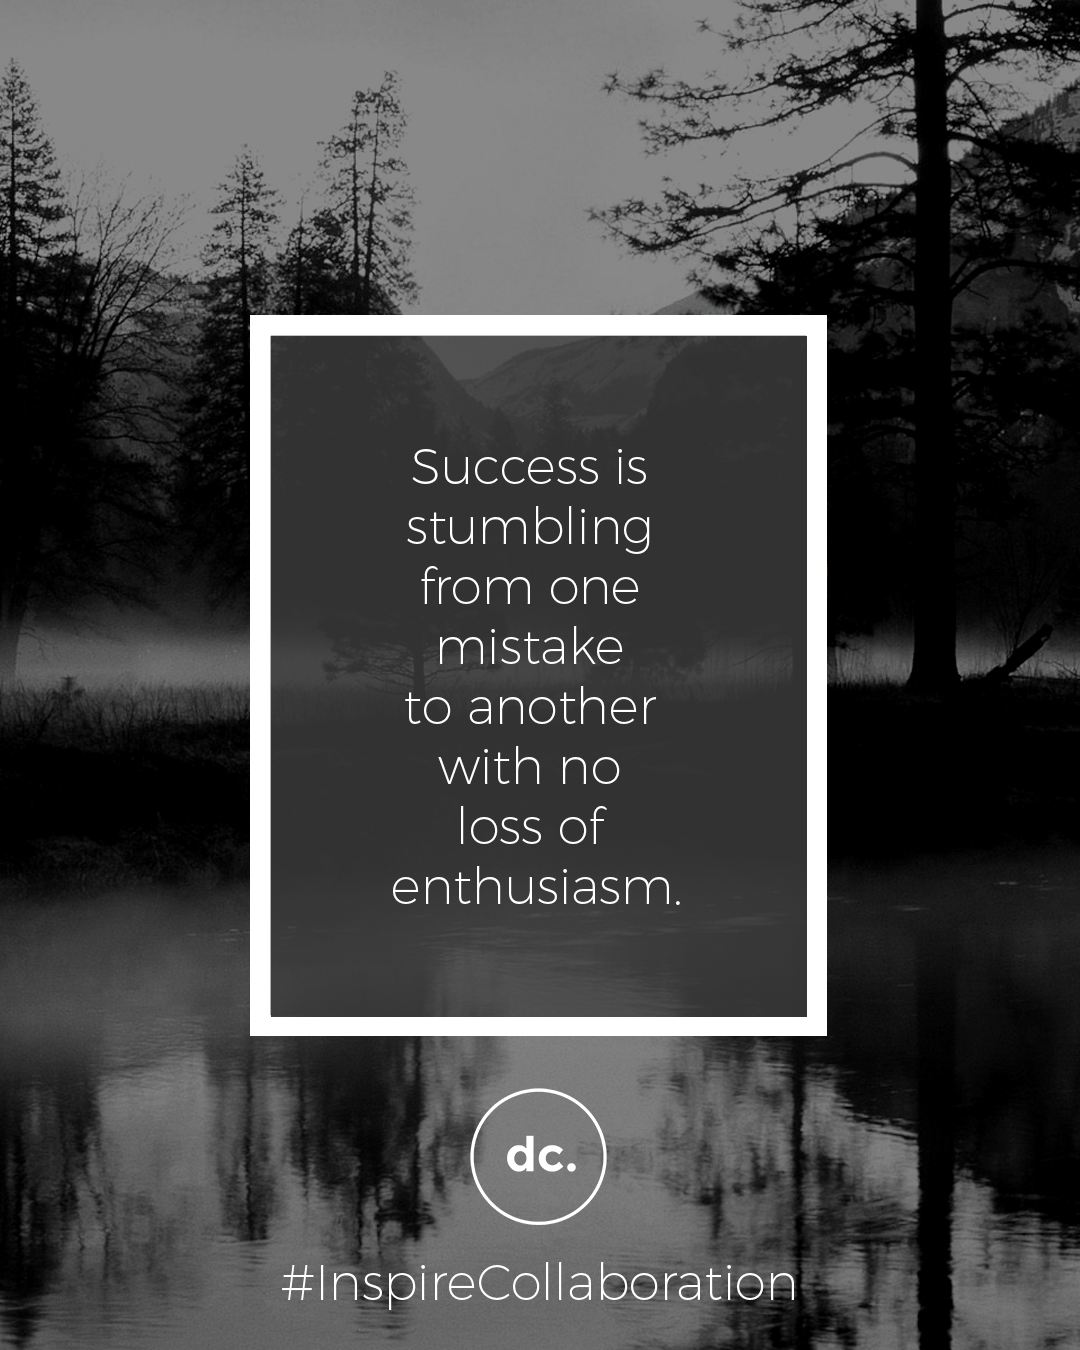 success mistakes quote dc